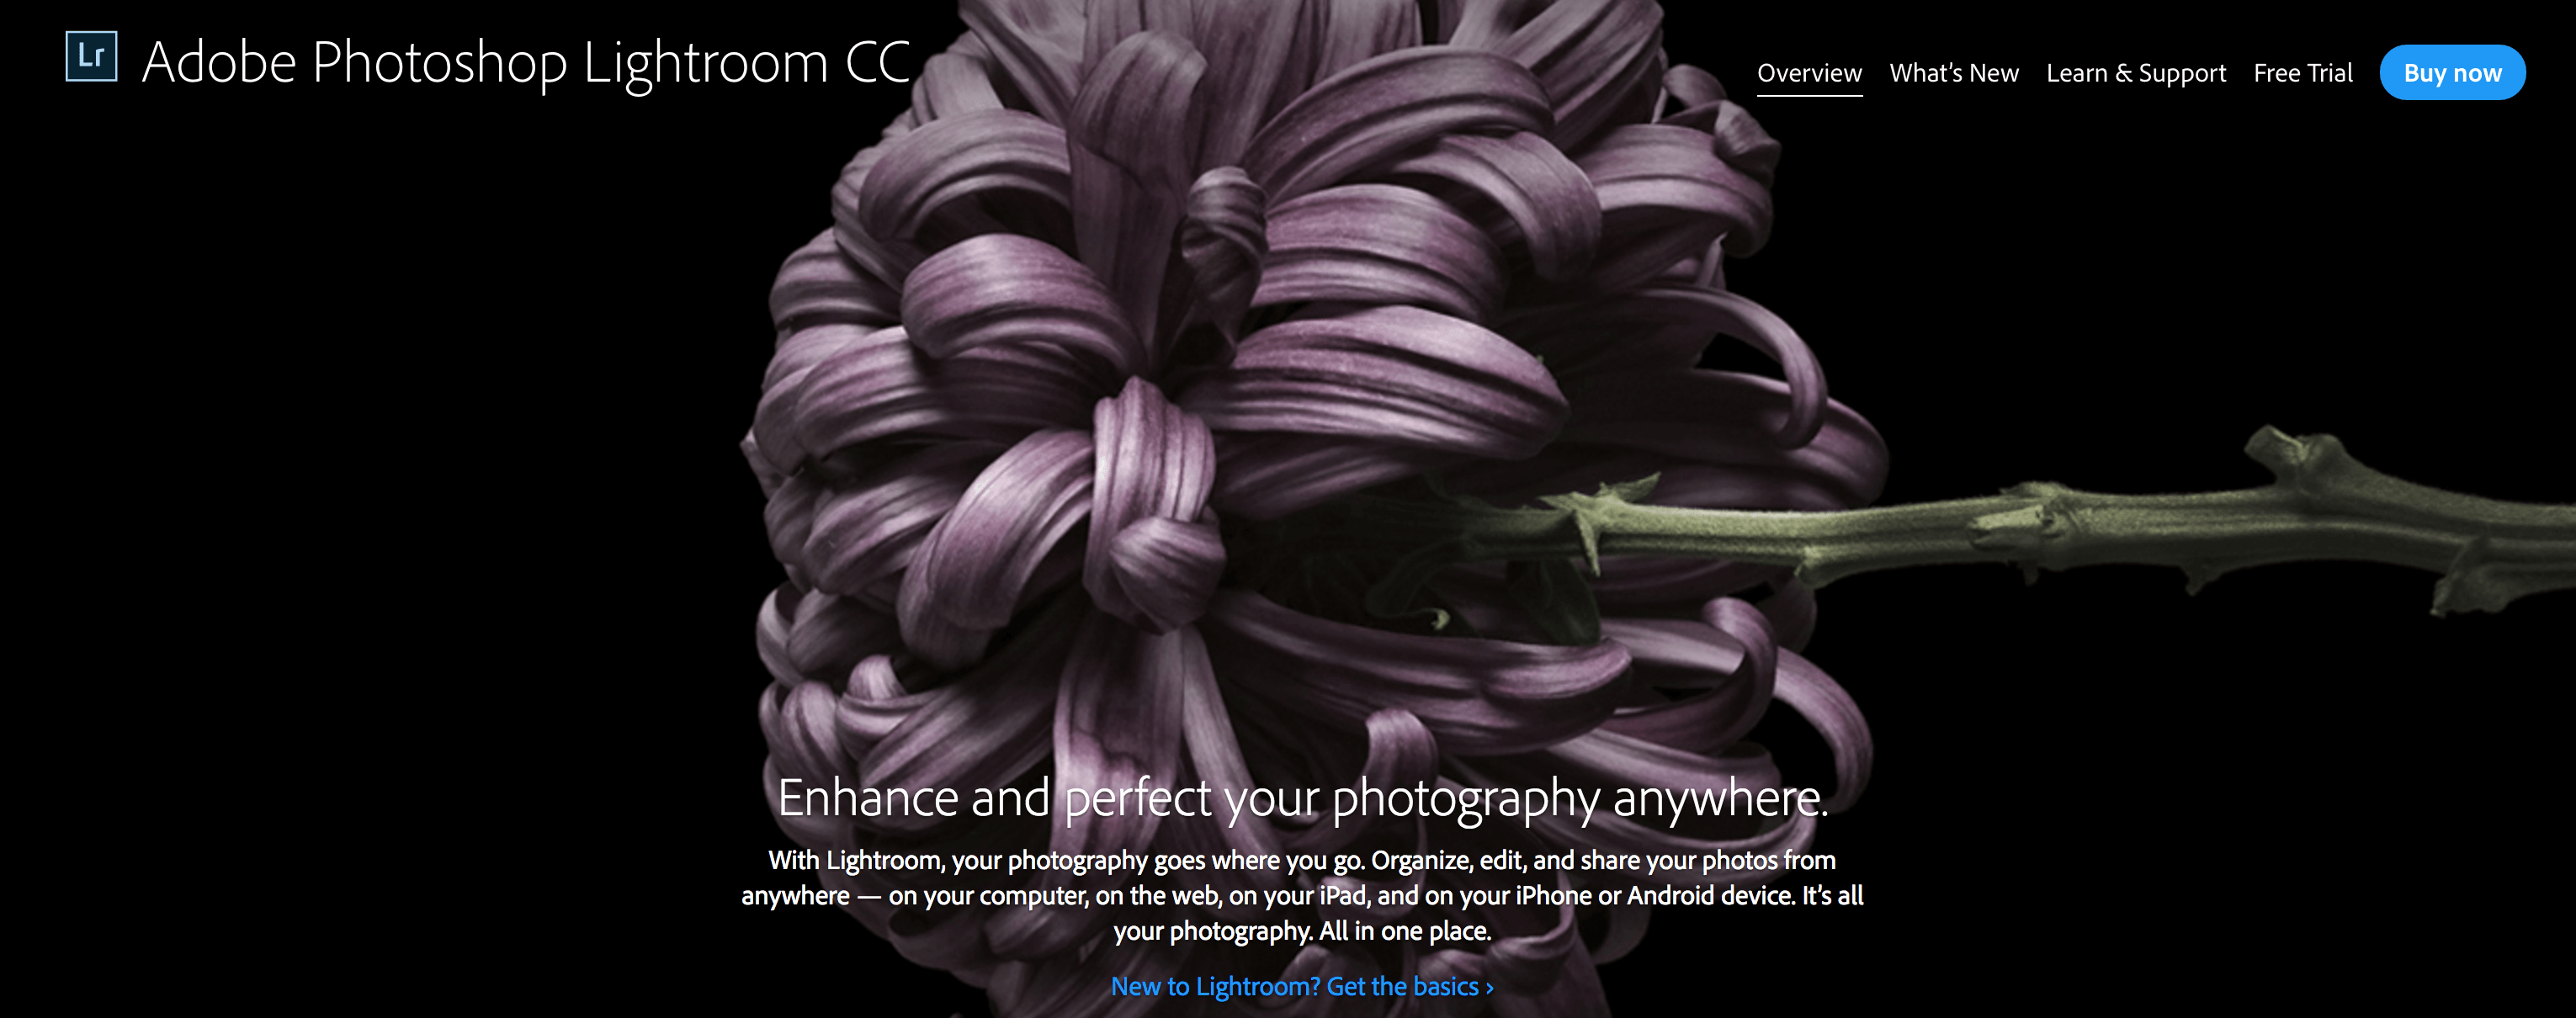 The Adobe Lightroom home page.